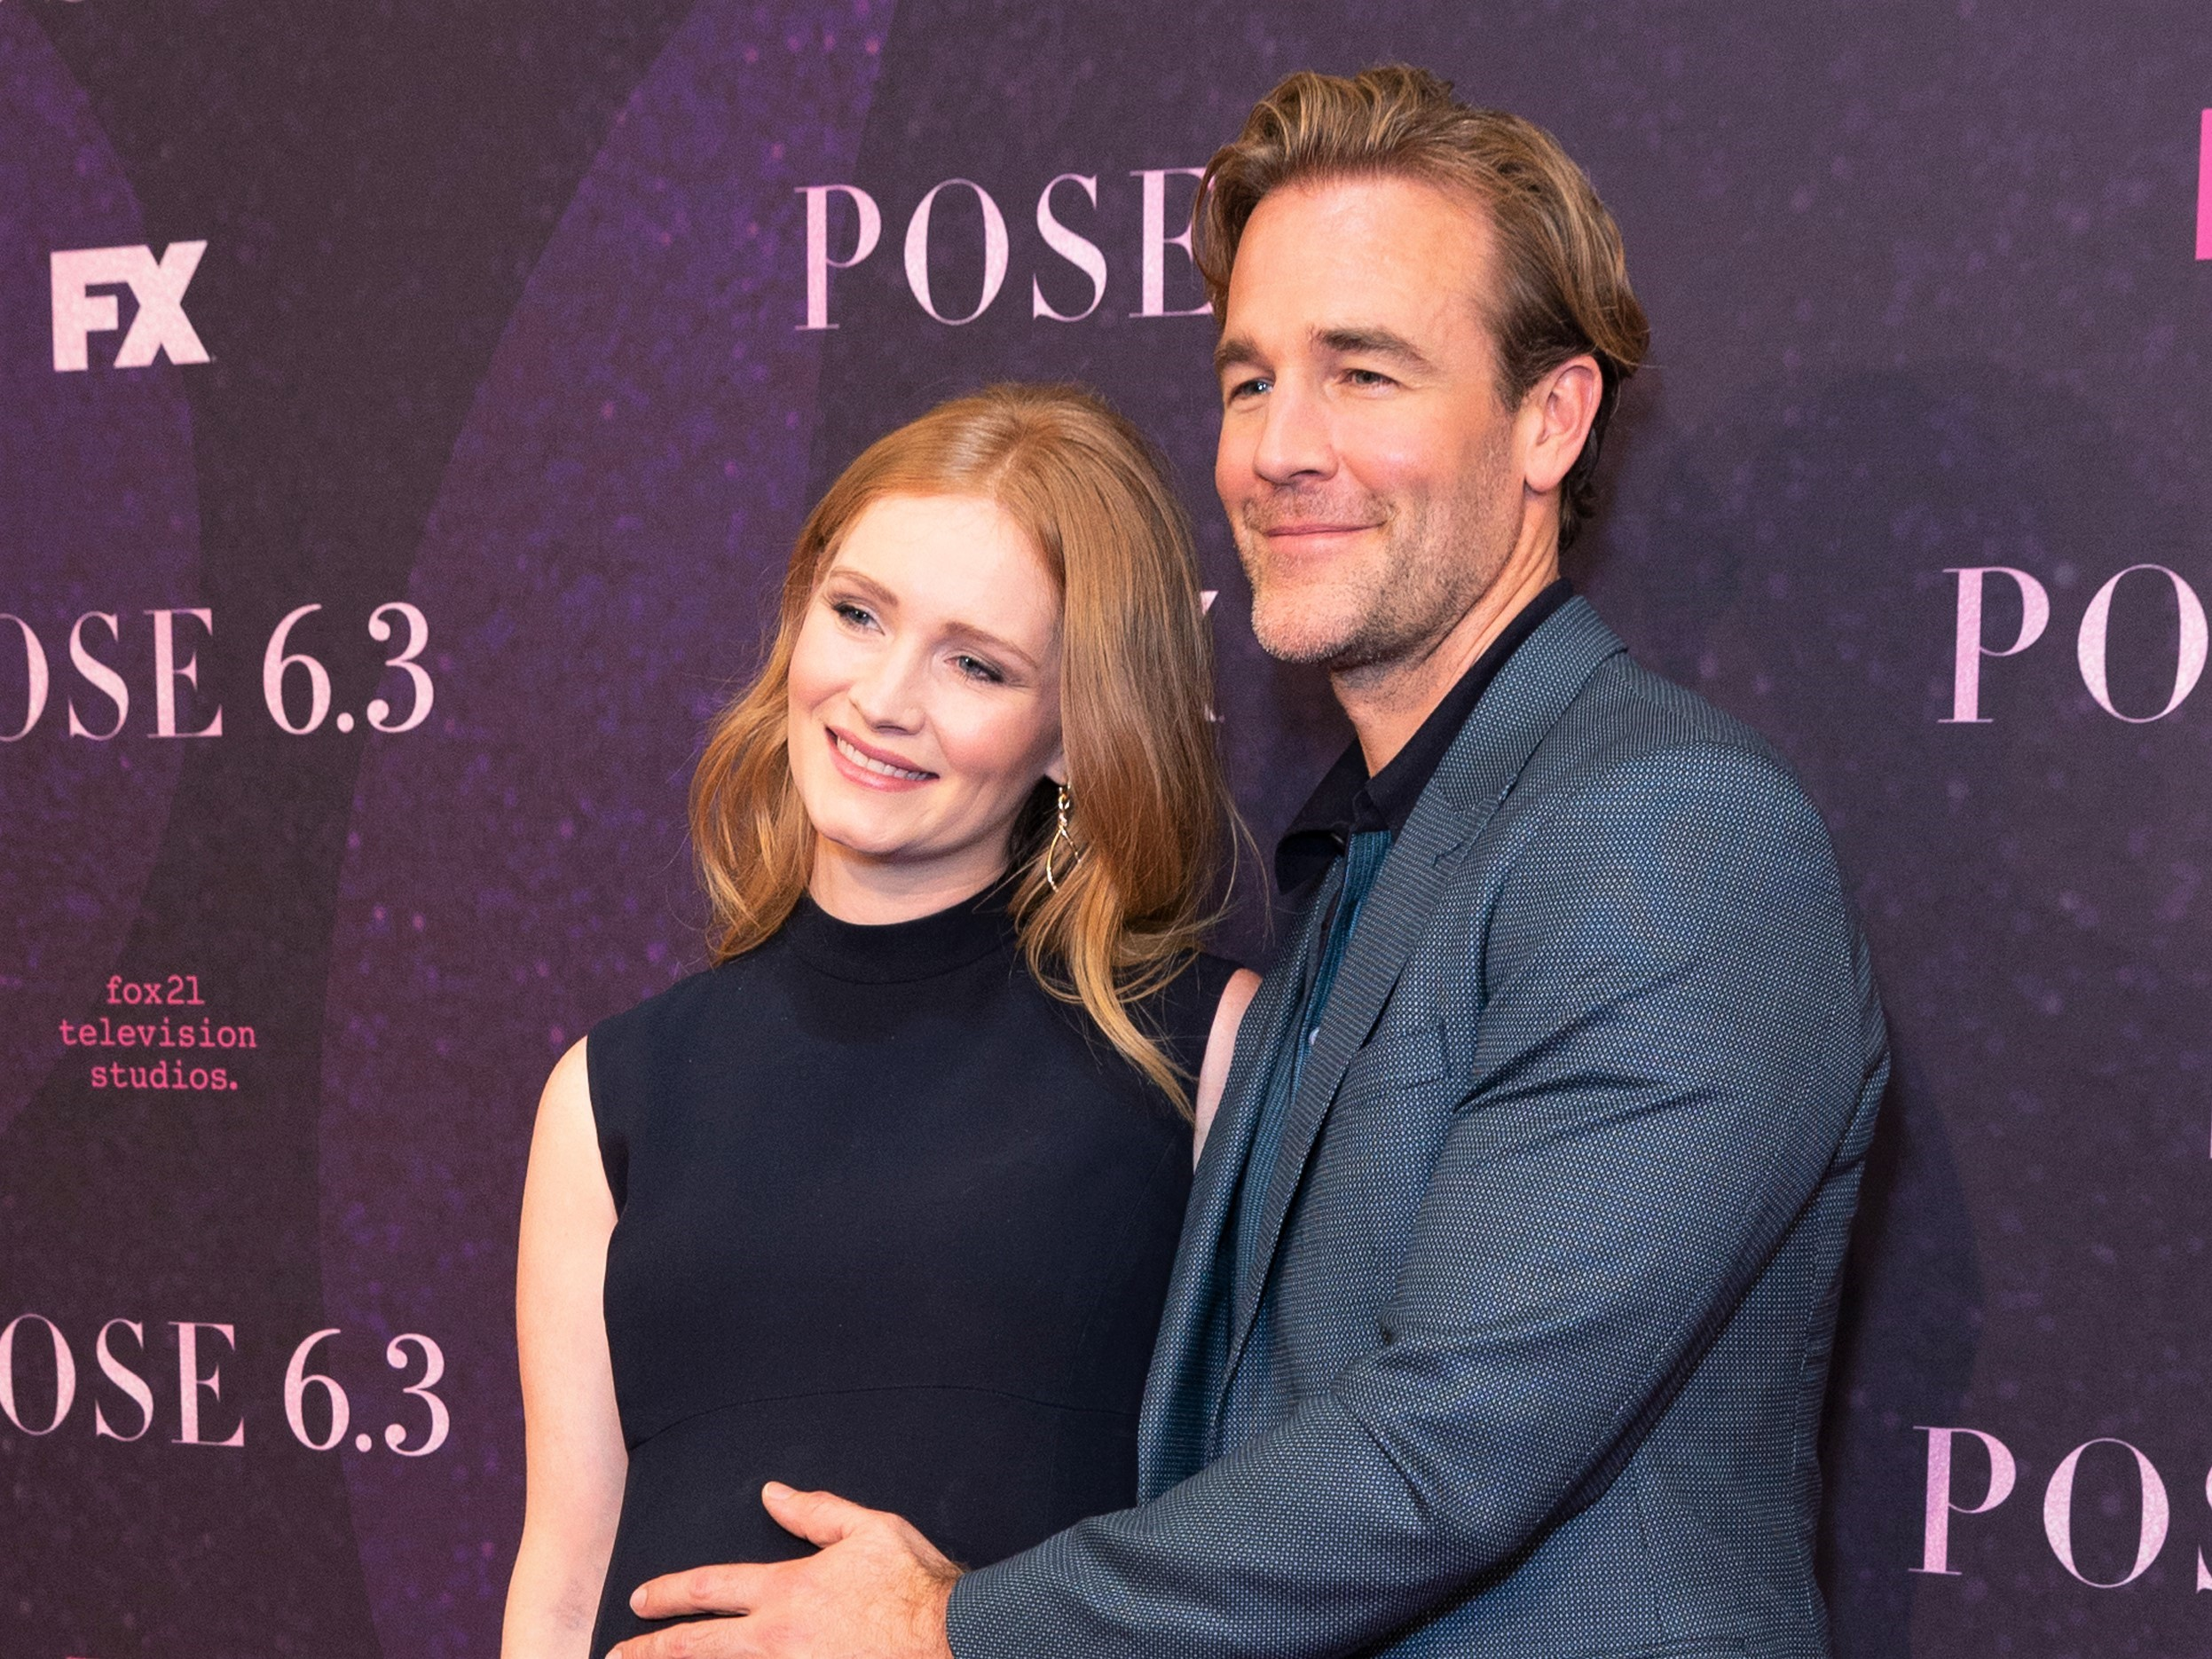 James Van Der Beek and Kimberly Brook Carpet Event